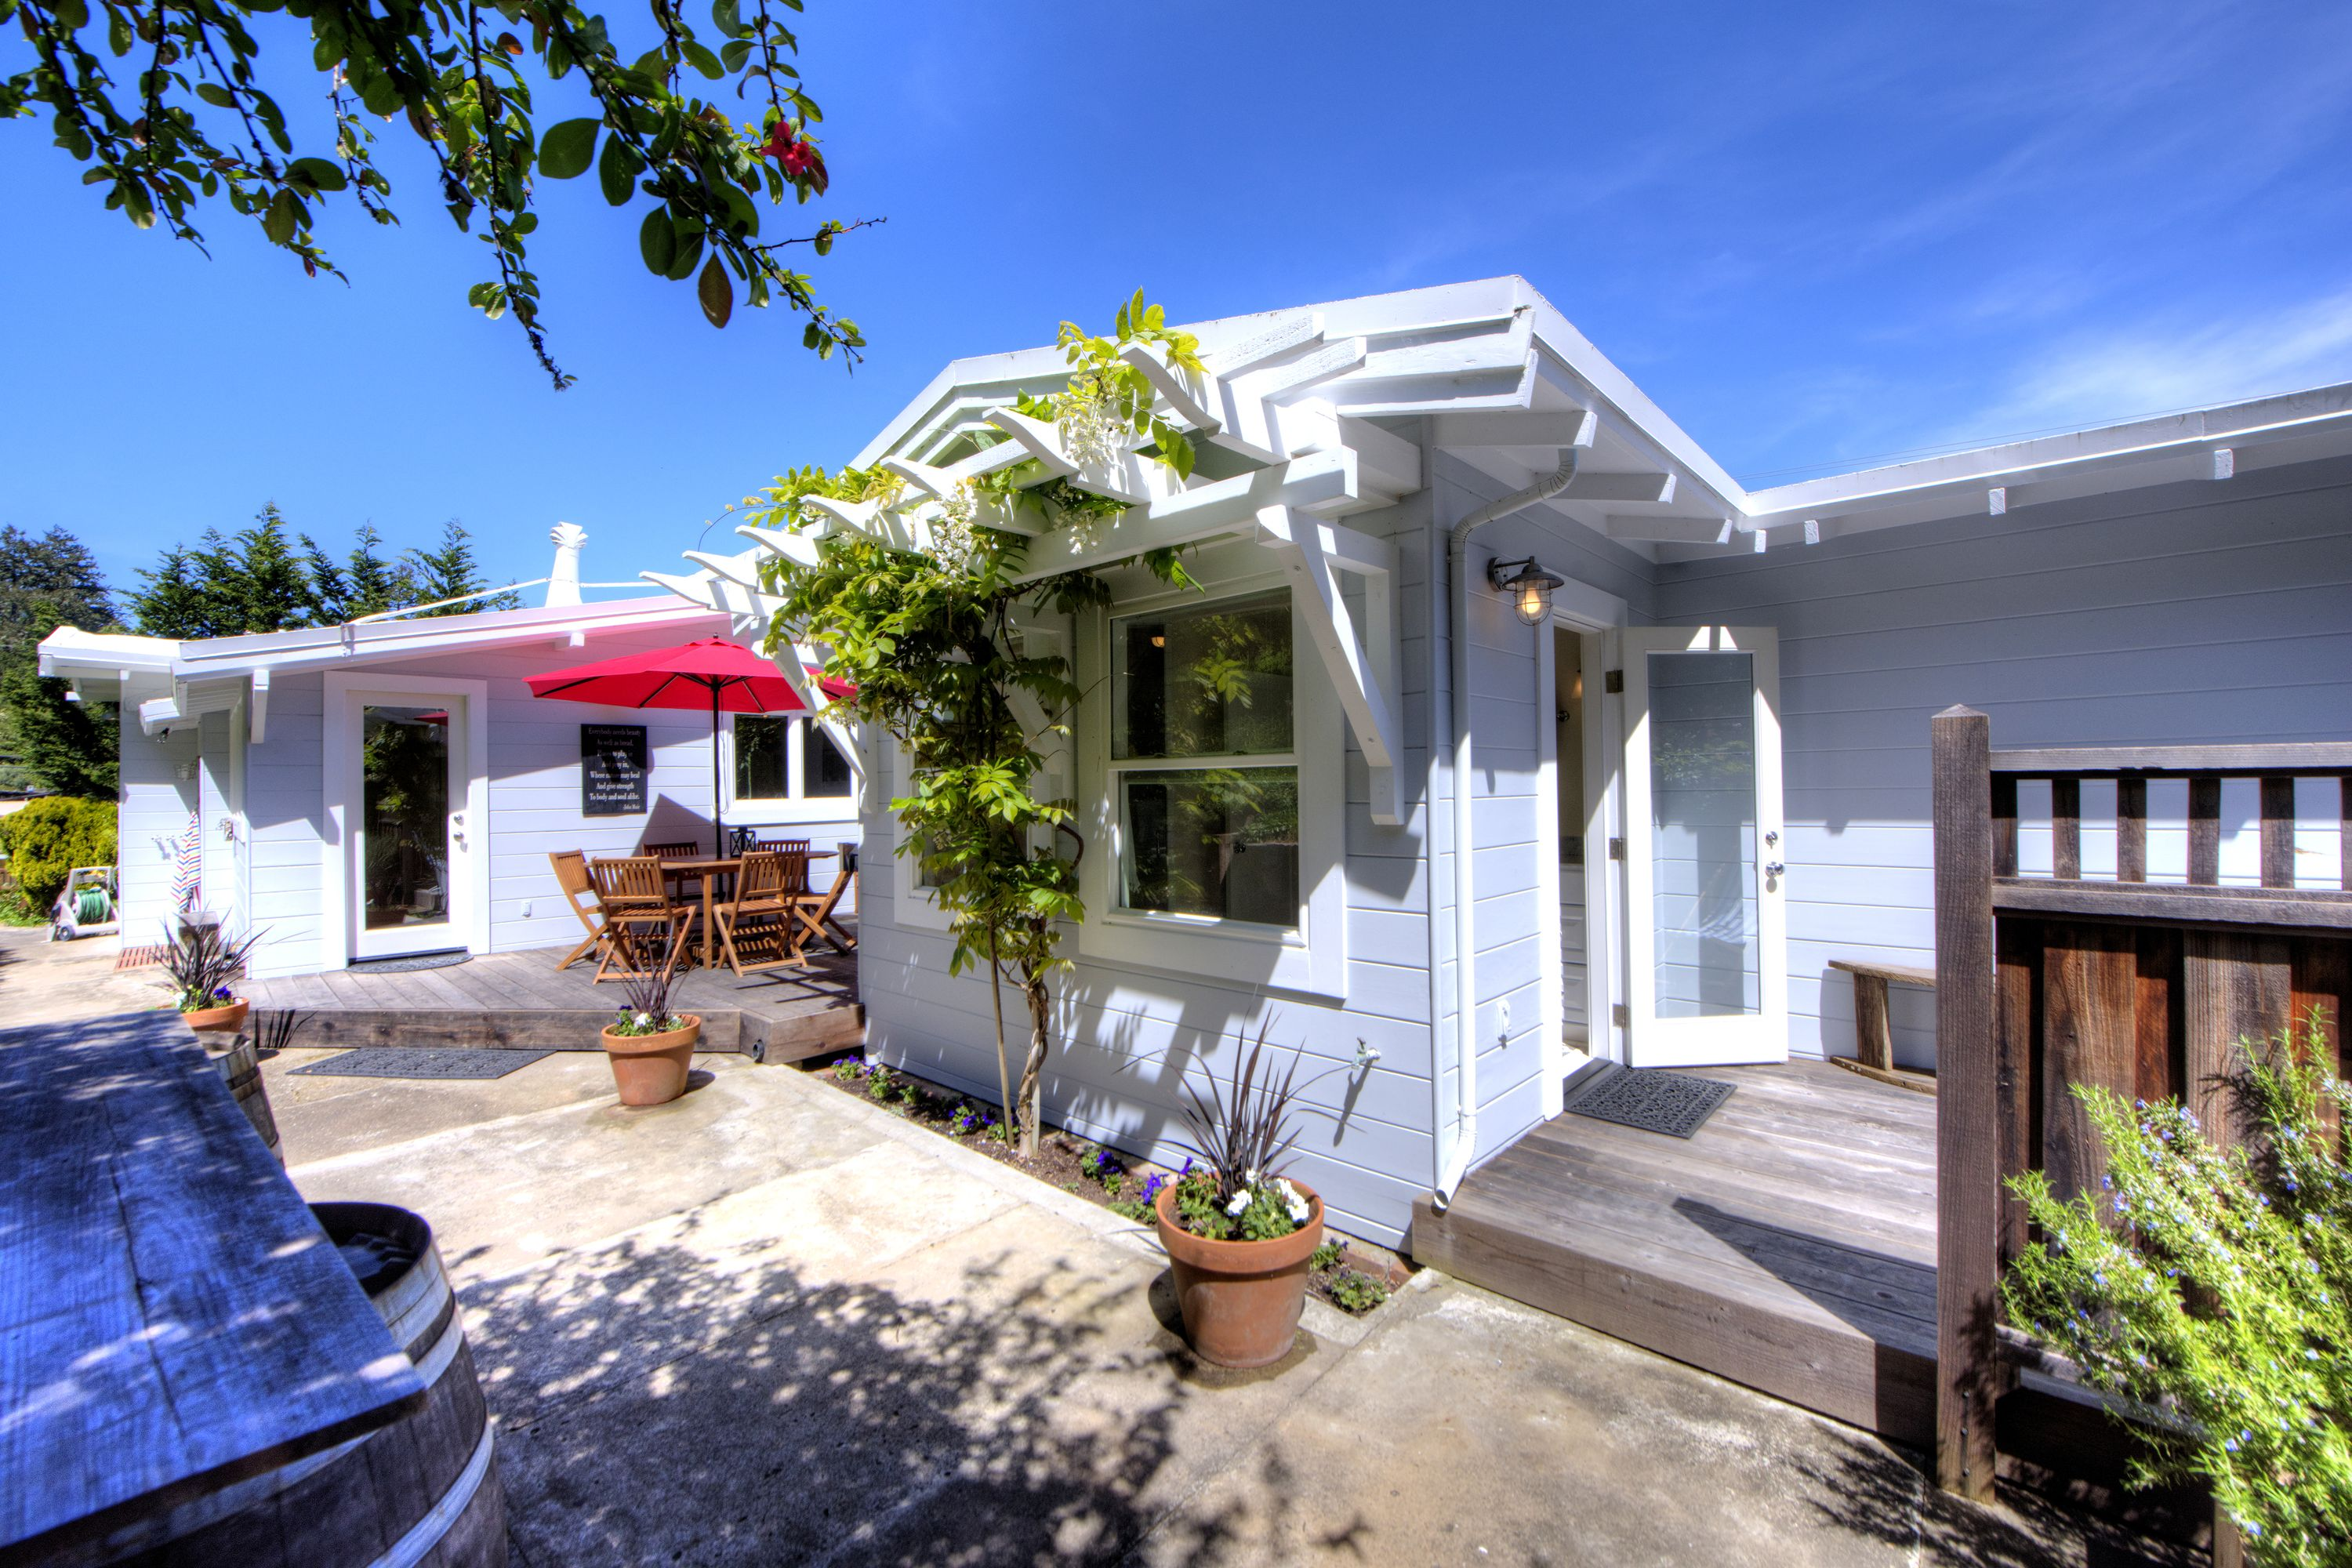 Single Family Home for Sale at Wonderful Coastal Cottage 3 Vallejo Avenue Inverness, California, 94937 United States